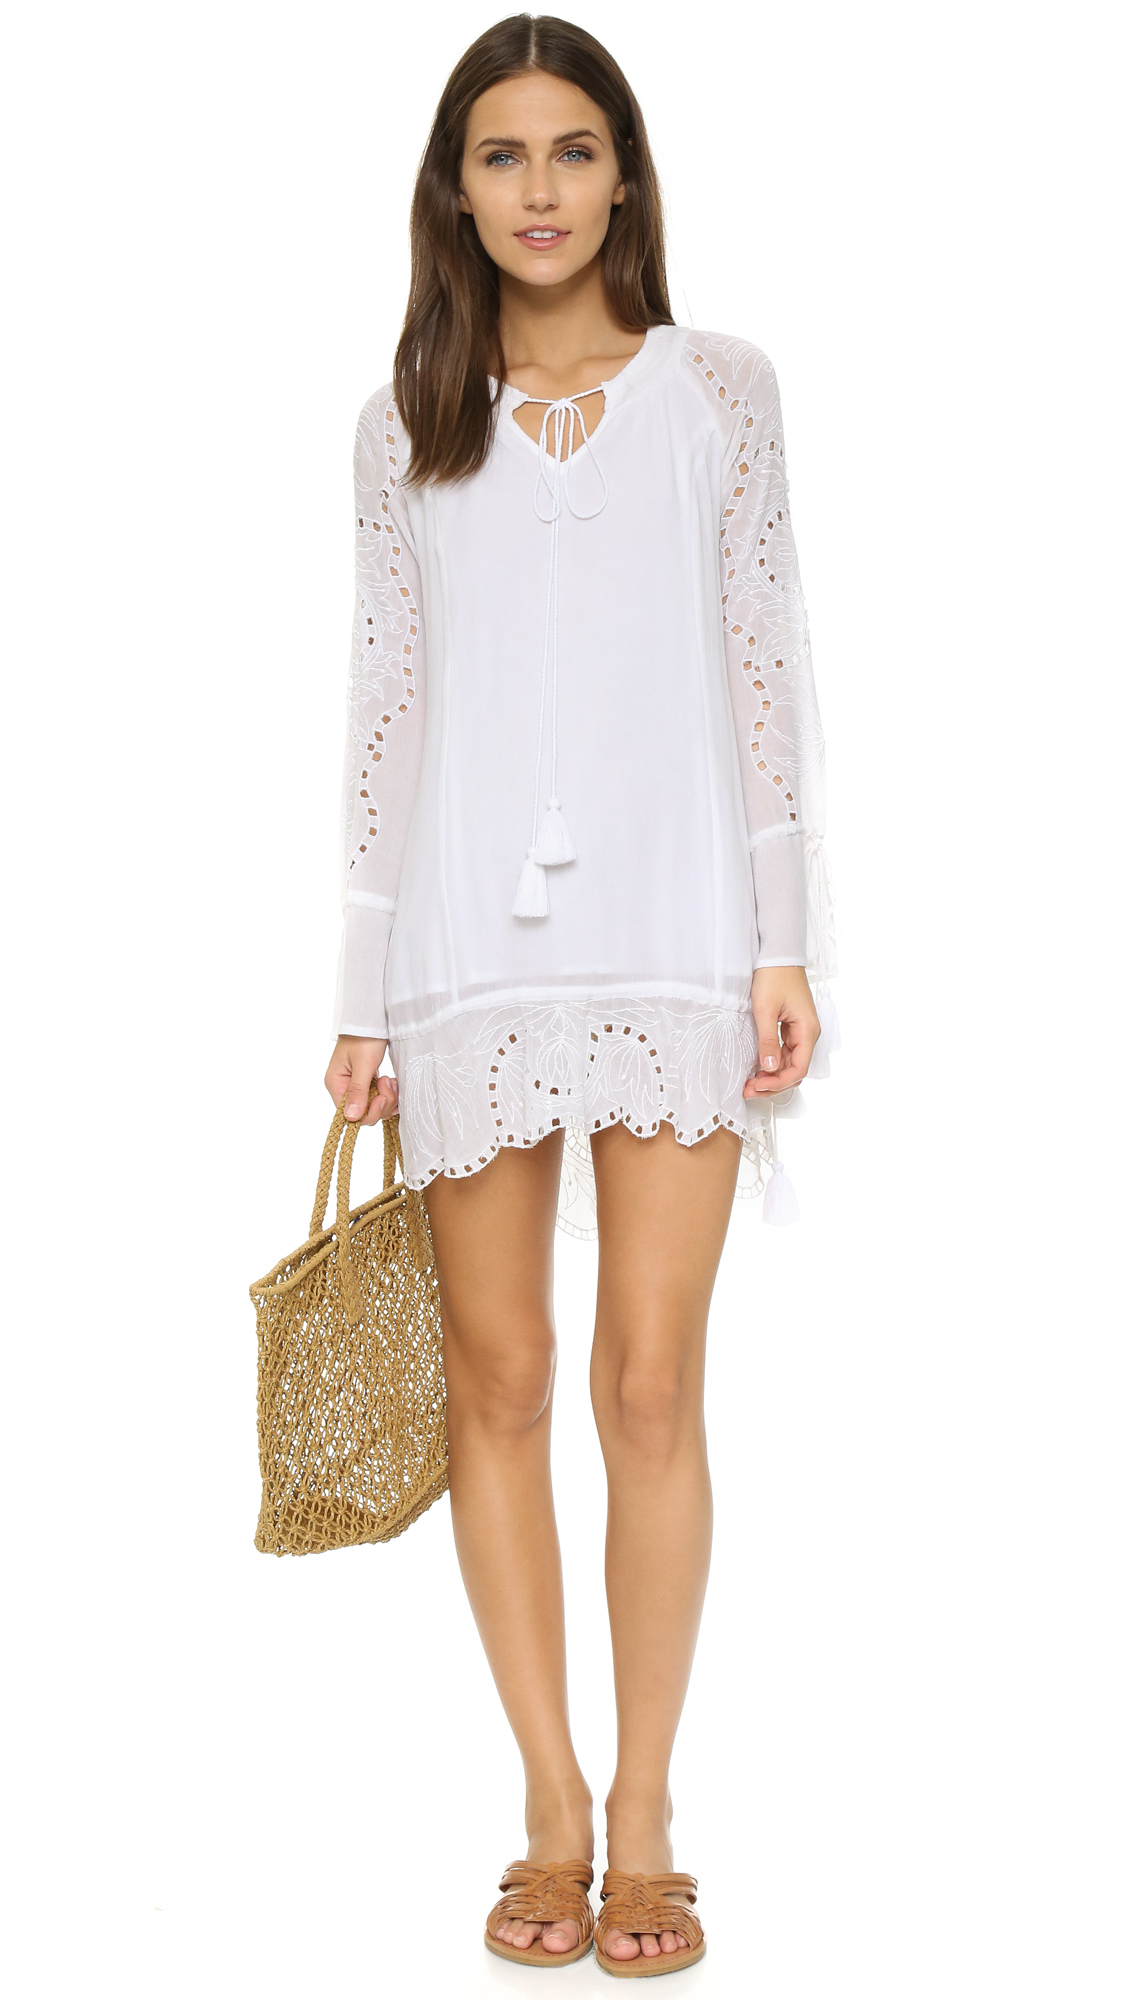 Lyst - Rahicali Long Sleeve Mini Dress in White